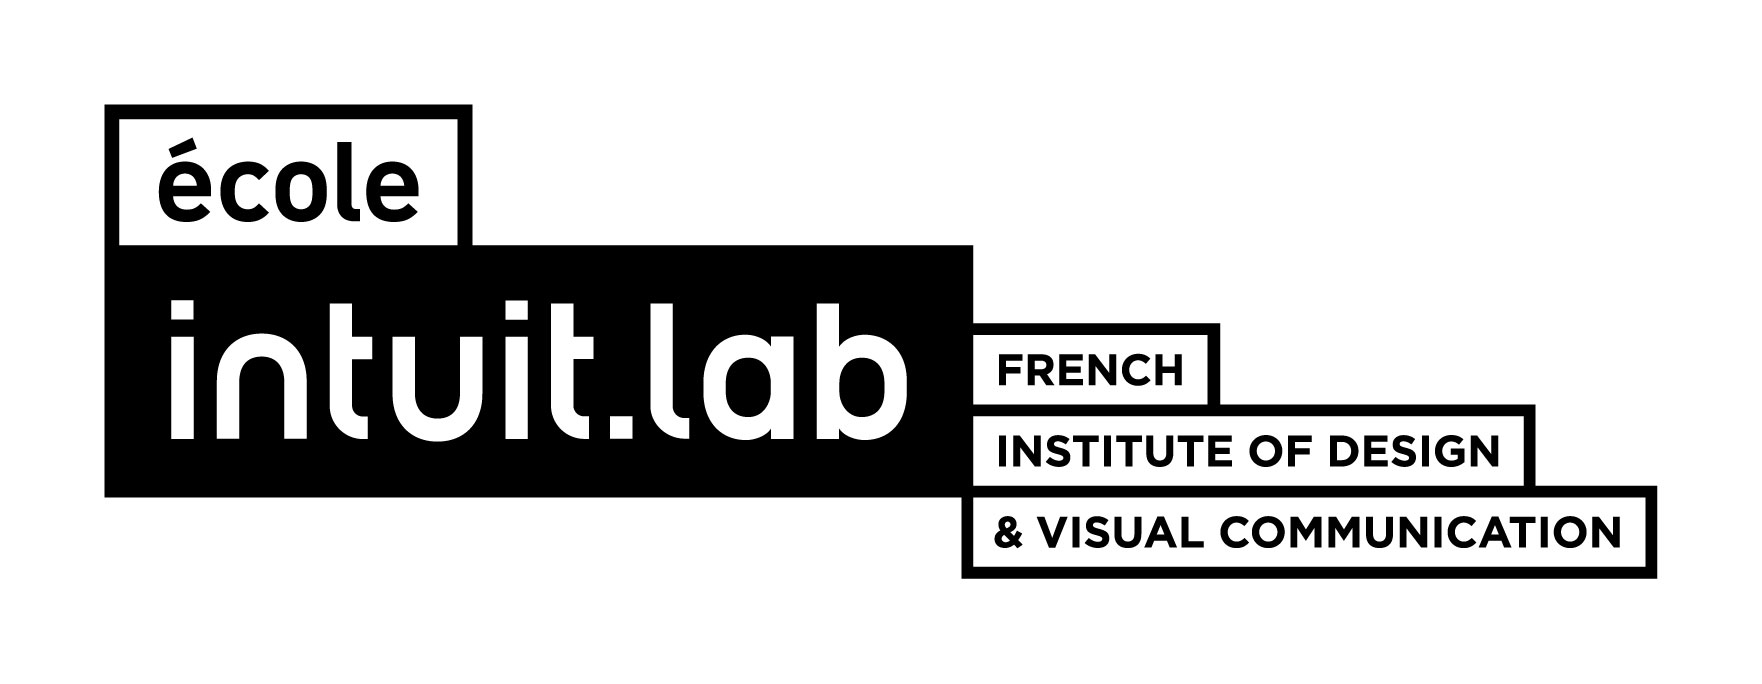 Ecole intuit.lab Invites the Communications Industry to 'DESIGNXT 2018', its Annual Talent Showcase & Campus Placement Event